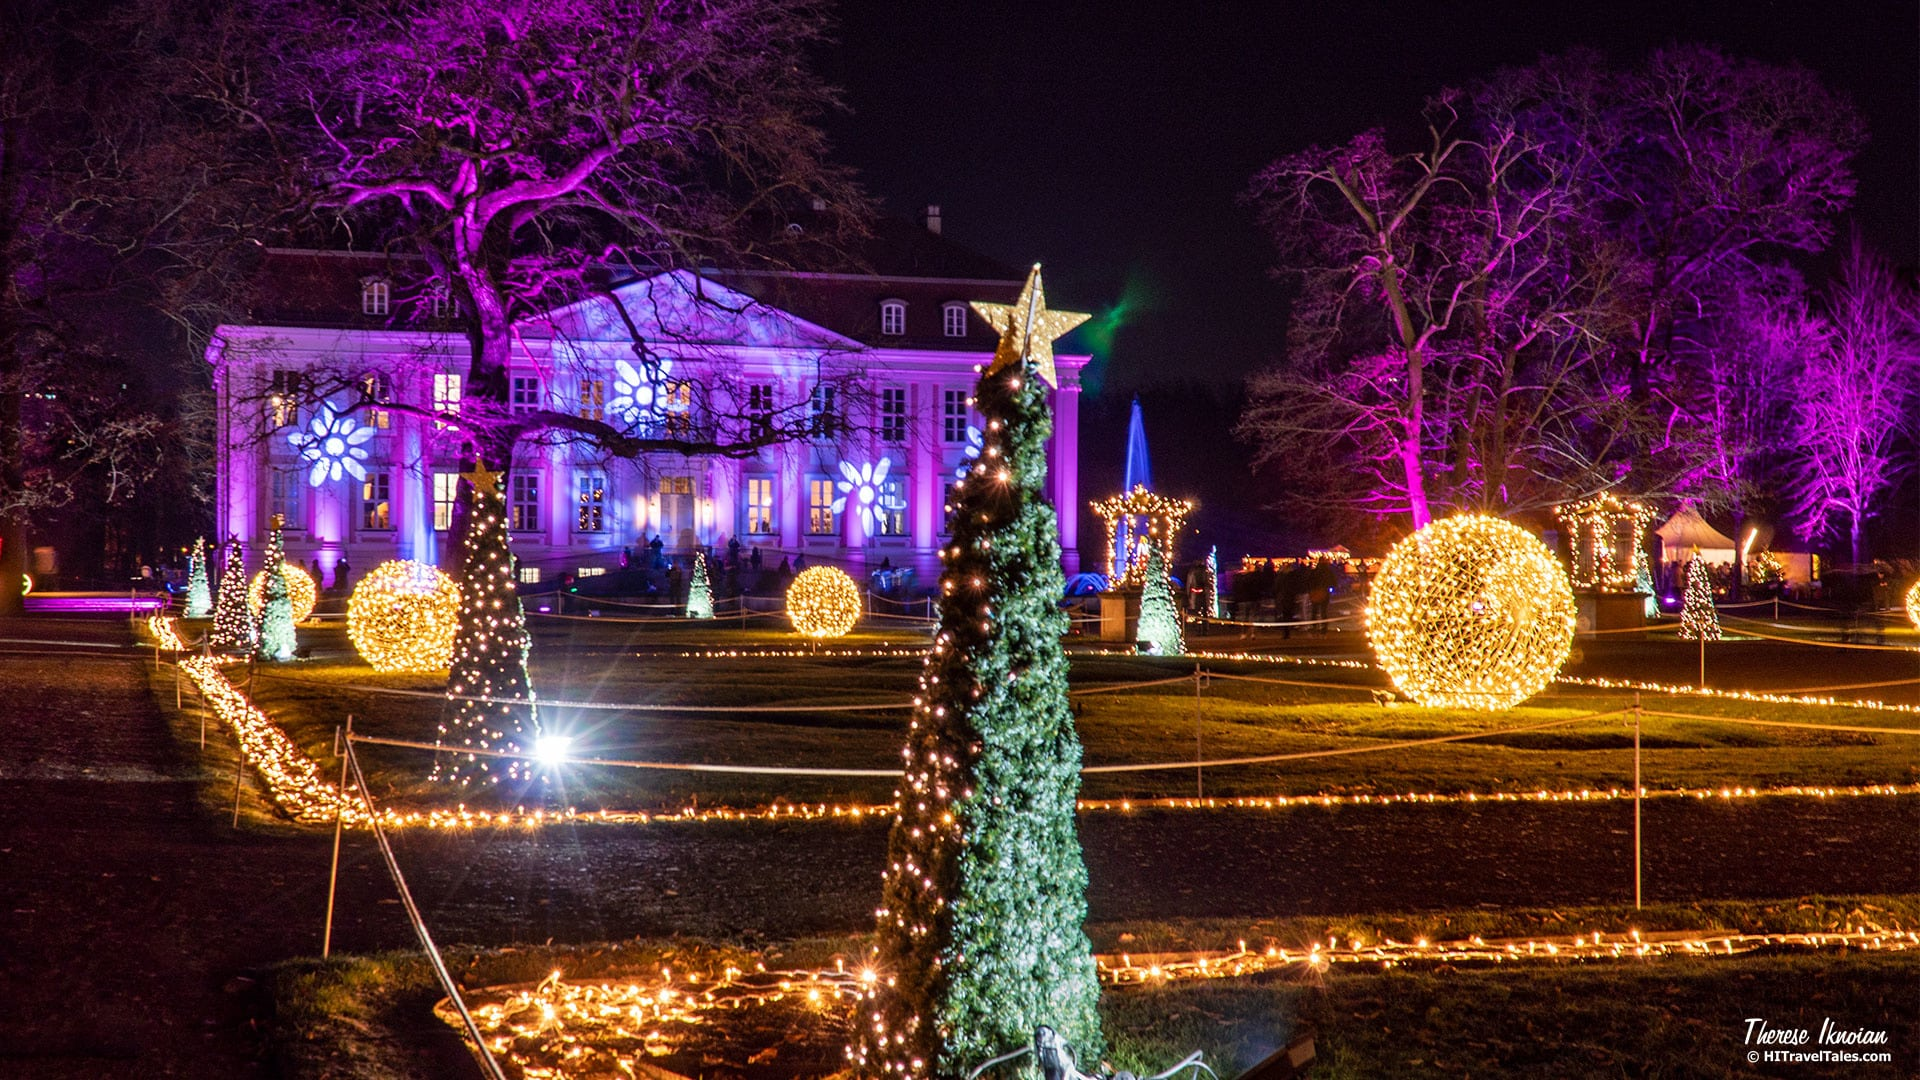 While we can't promise falling snow, Christmas at the Tierpark (also known as Christmas at the Zoo and